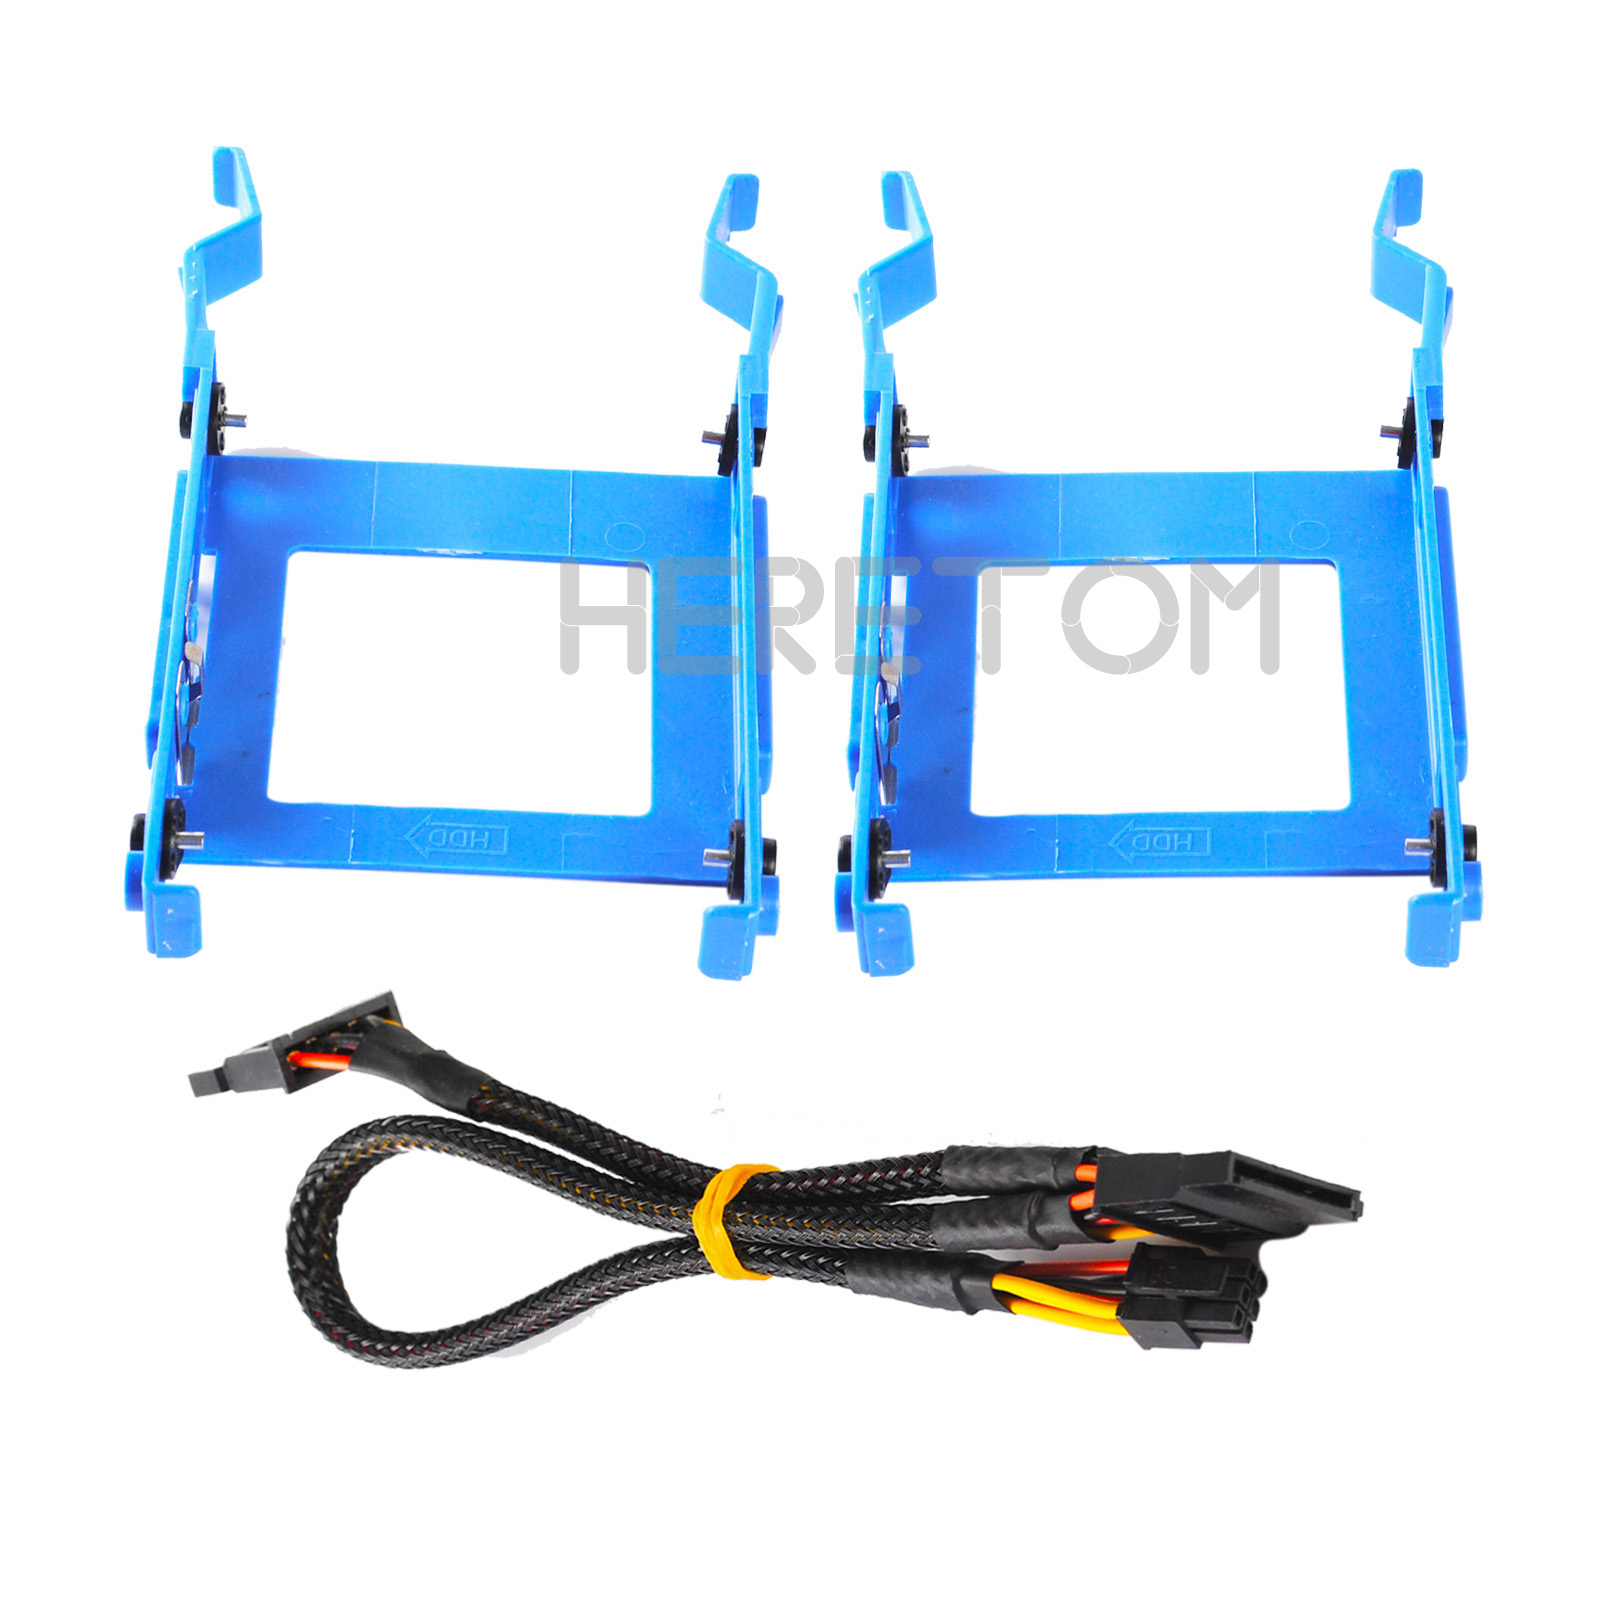 """Heretom 2.5"""" HDD Bracket Caddy 3650 for Dell Optiplex 3040 5040 5050 7040 7050 3046 MT X9FV3 with Power Cable GP2JM"""